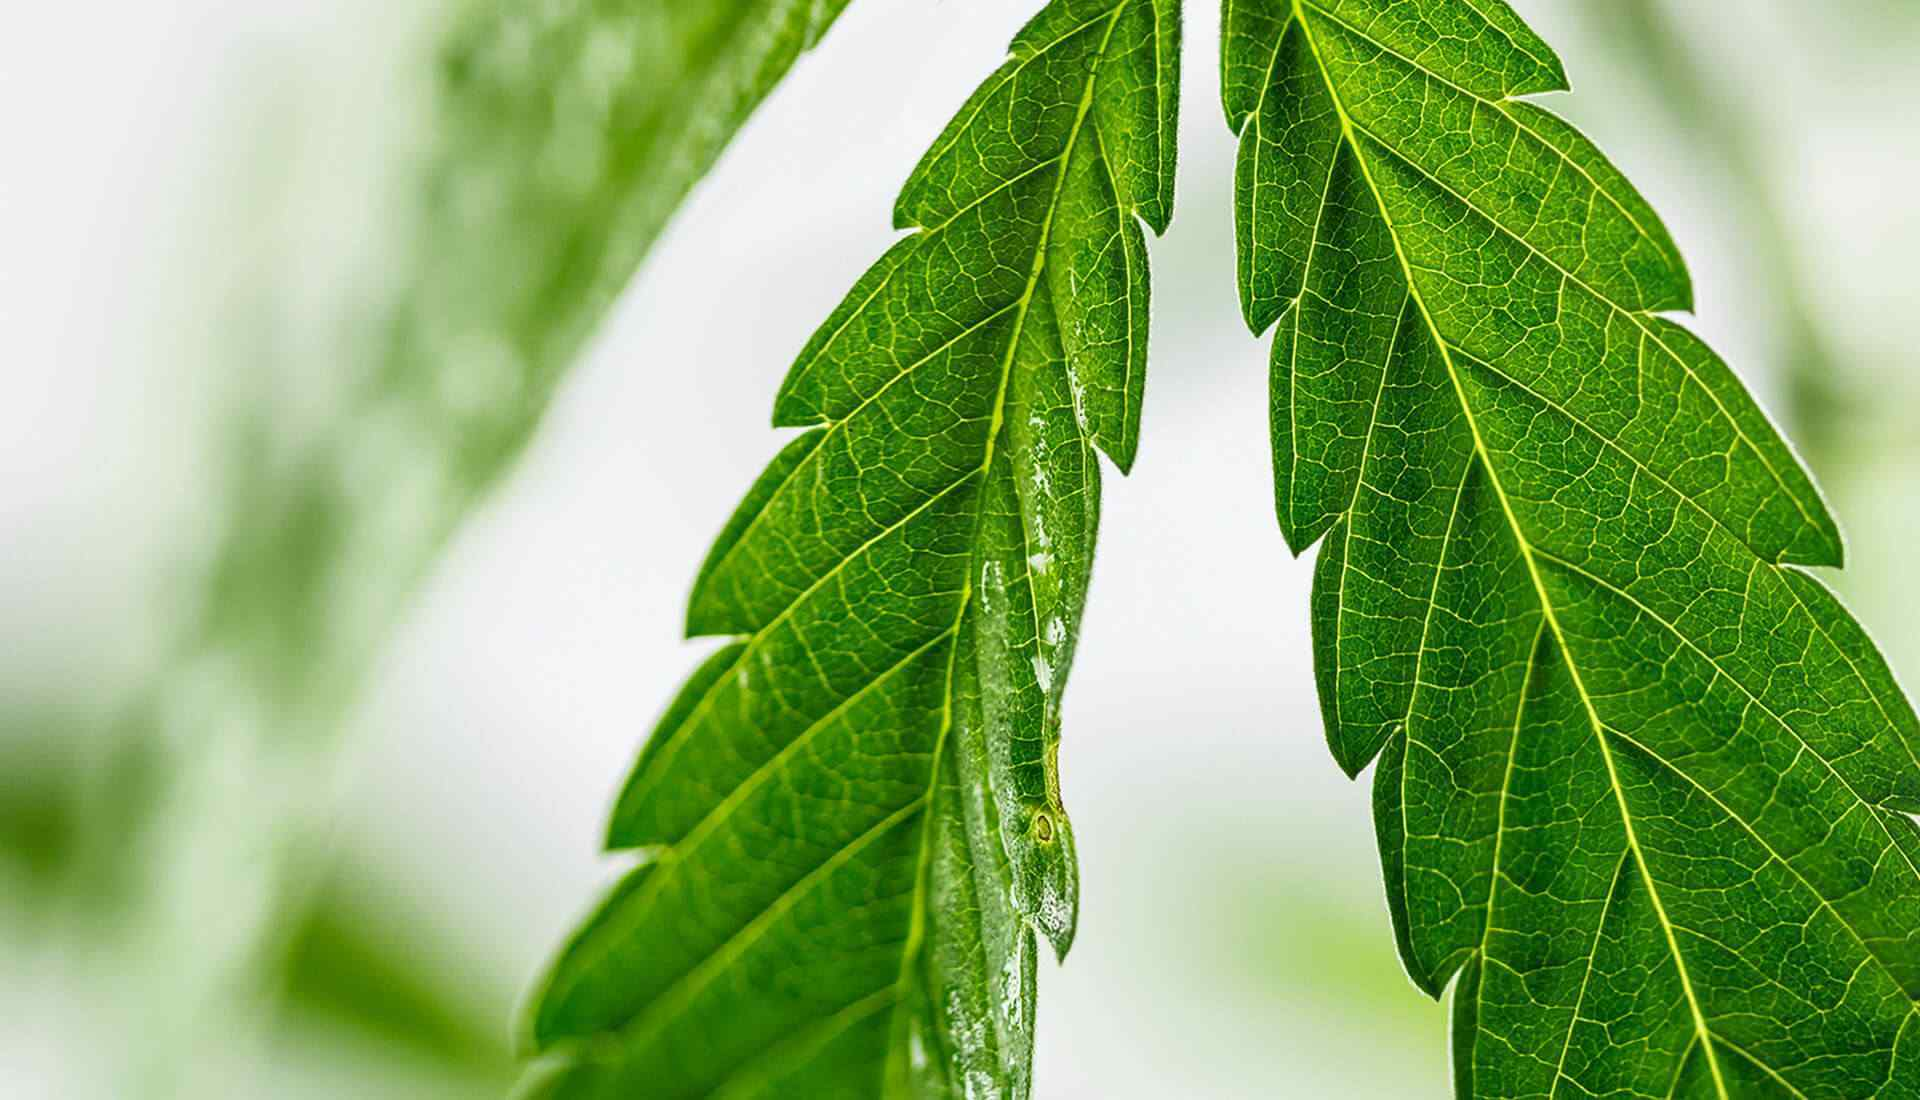 Close up of cannabis or hemp leaf